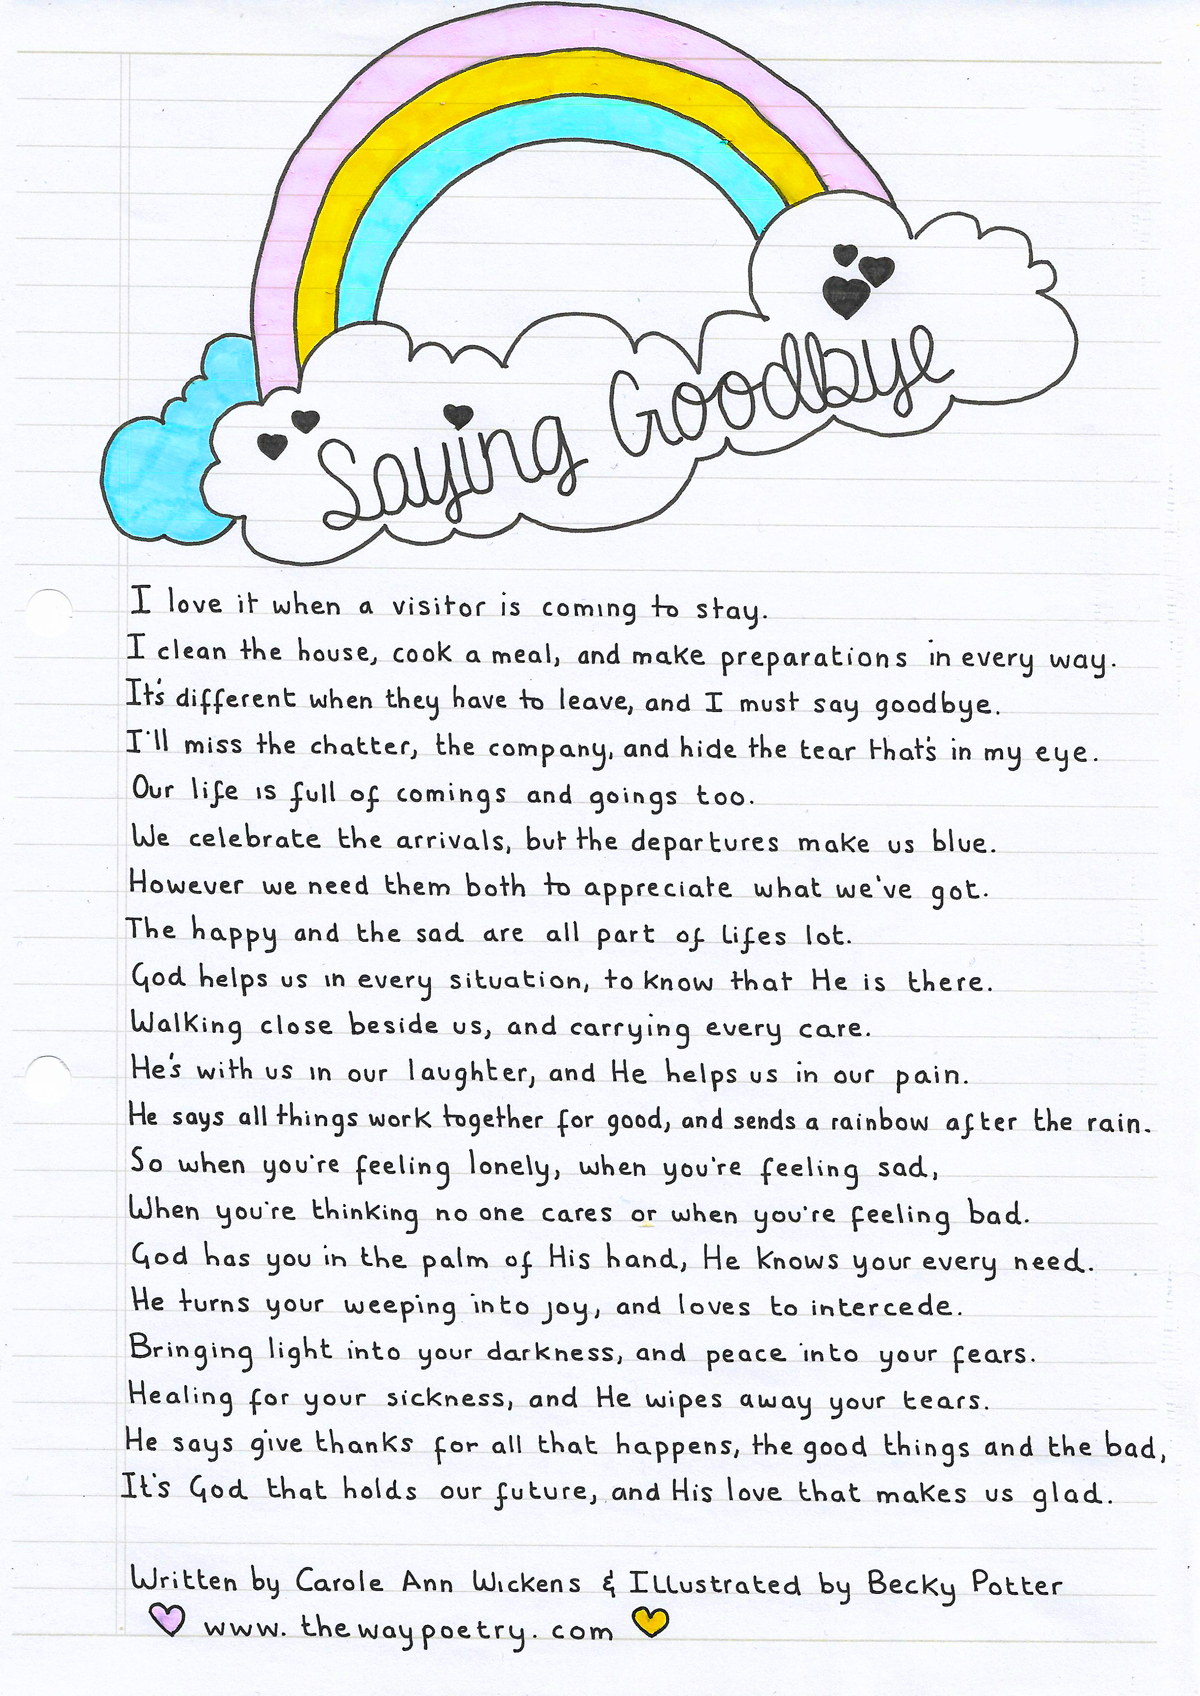 Saying Goodbye by Carole Ann Wickens